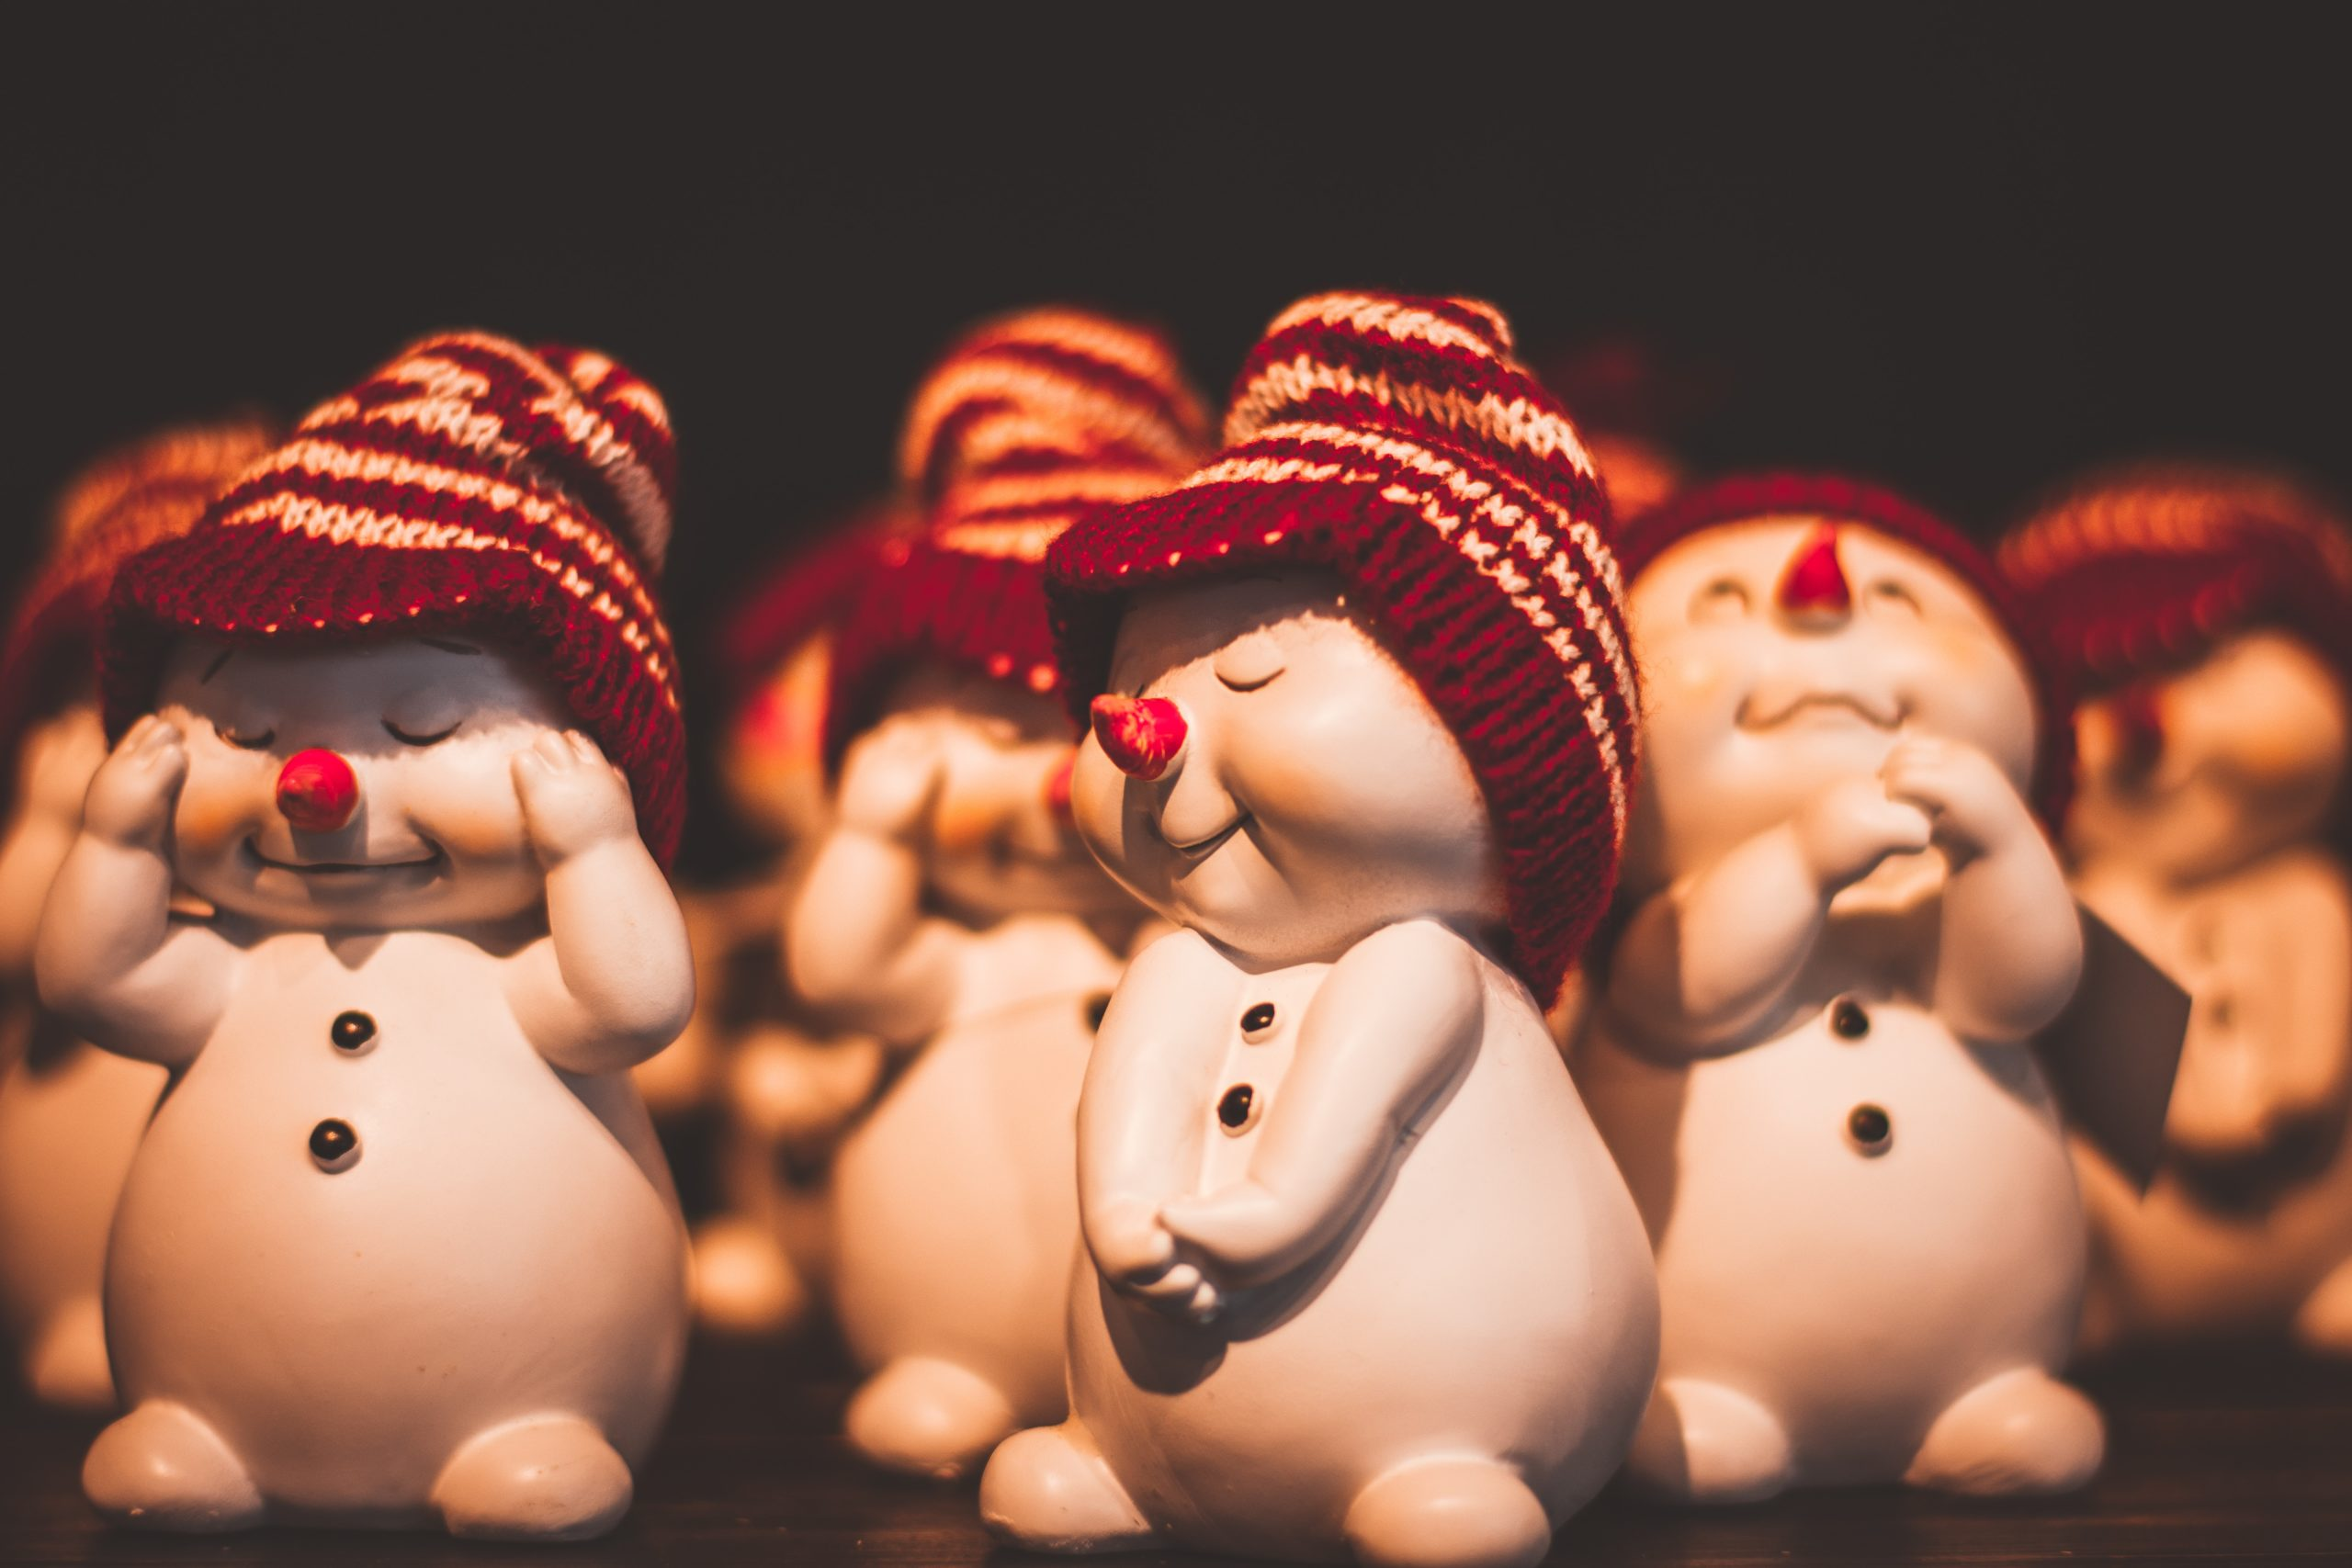 How the Christmas season affects relationships